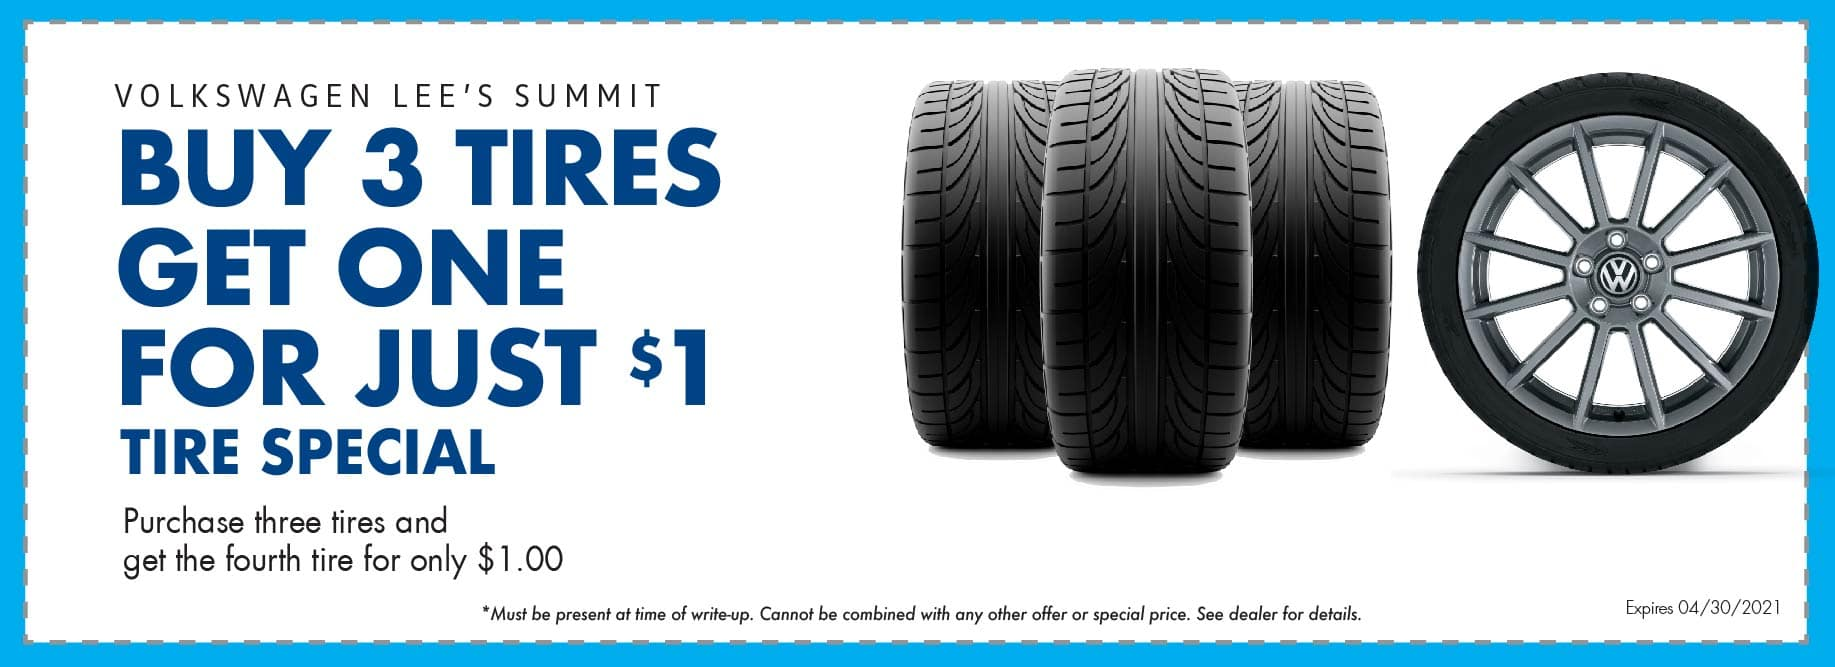 Buy 3 tires get the 4th for only $1 at Volkswagen Lee's Summit.